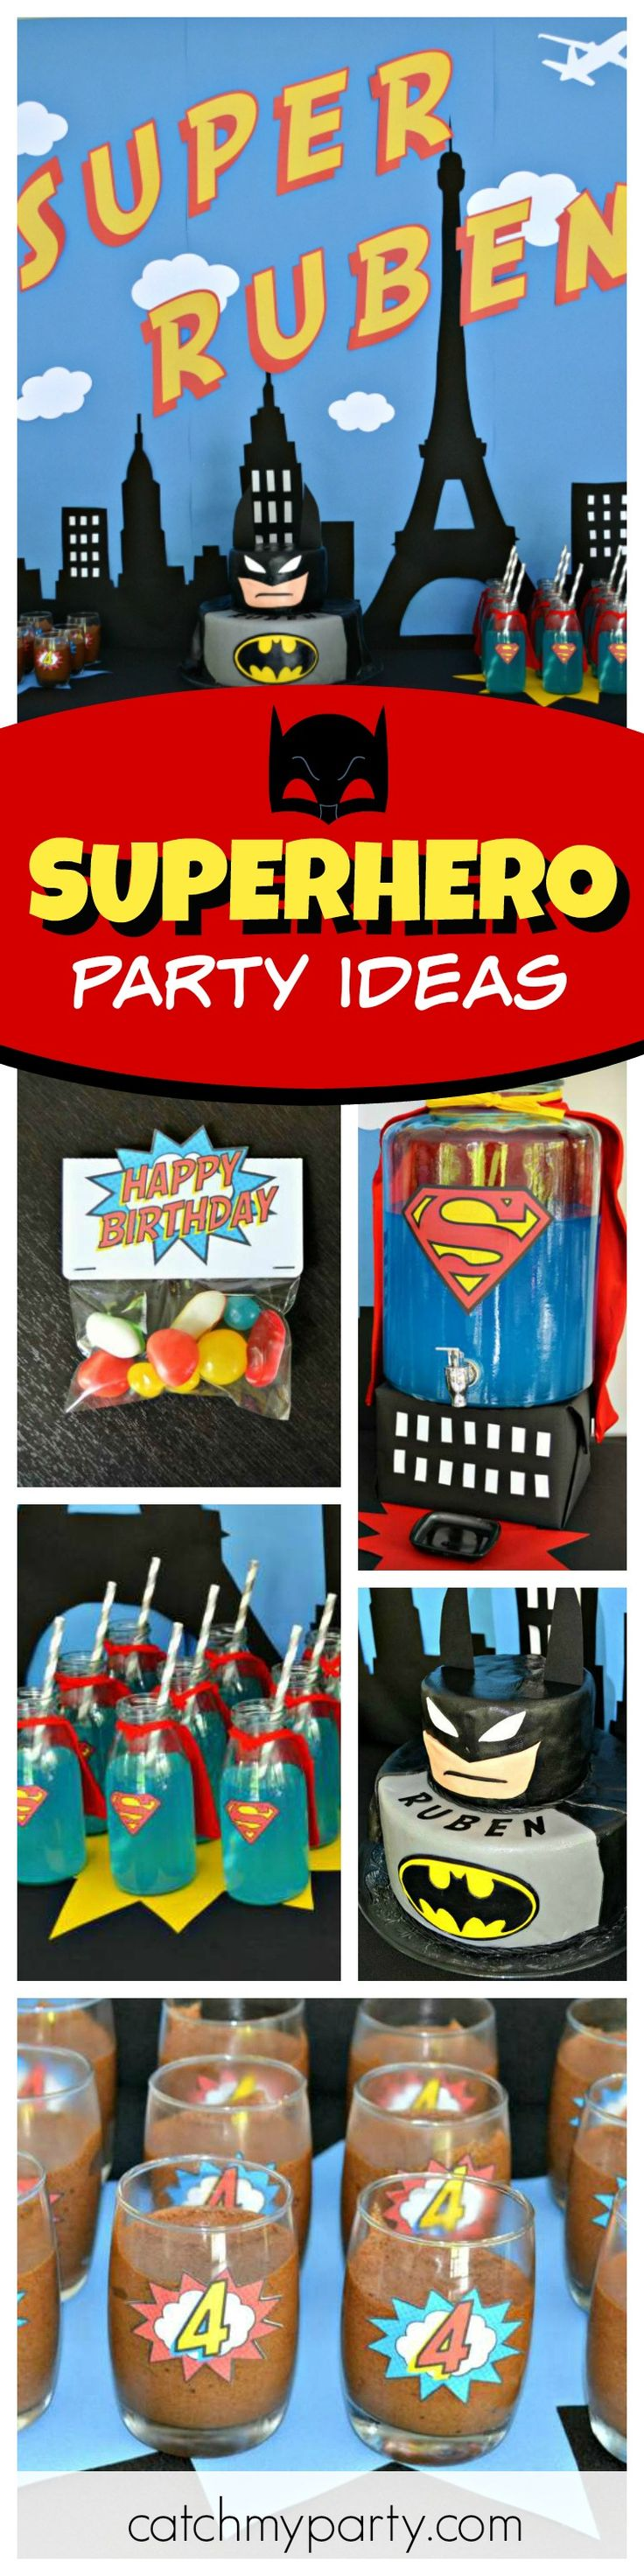 Check out this awesome Superhero birthday party! The Batman cake is amazing!! See more party ideas and share yours at CatchMyParty.com